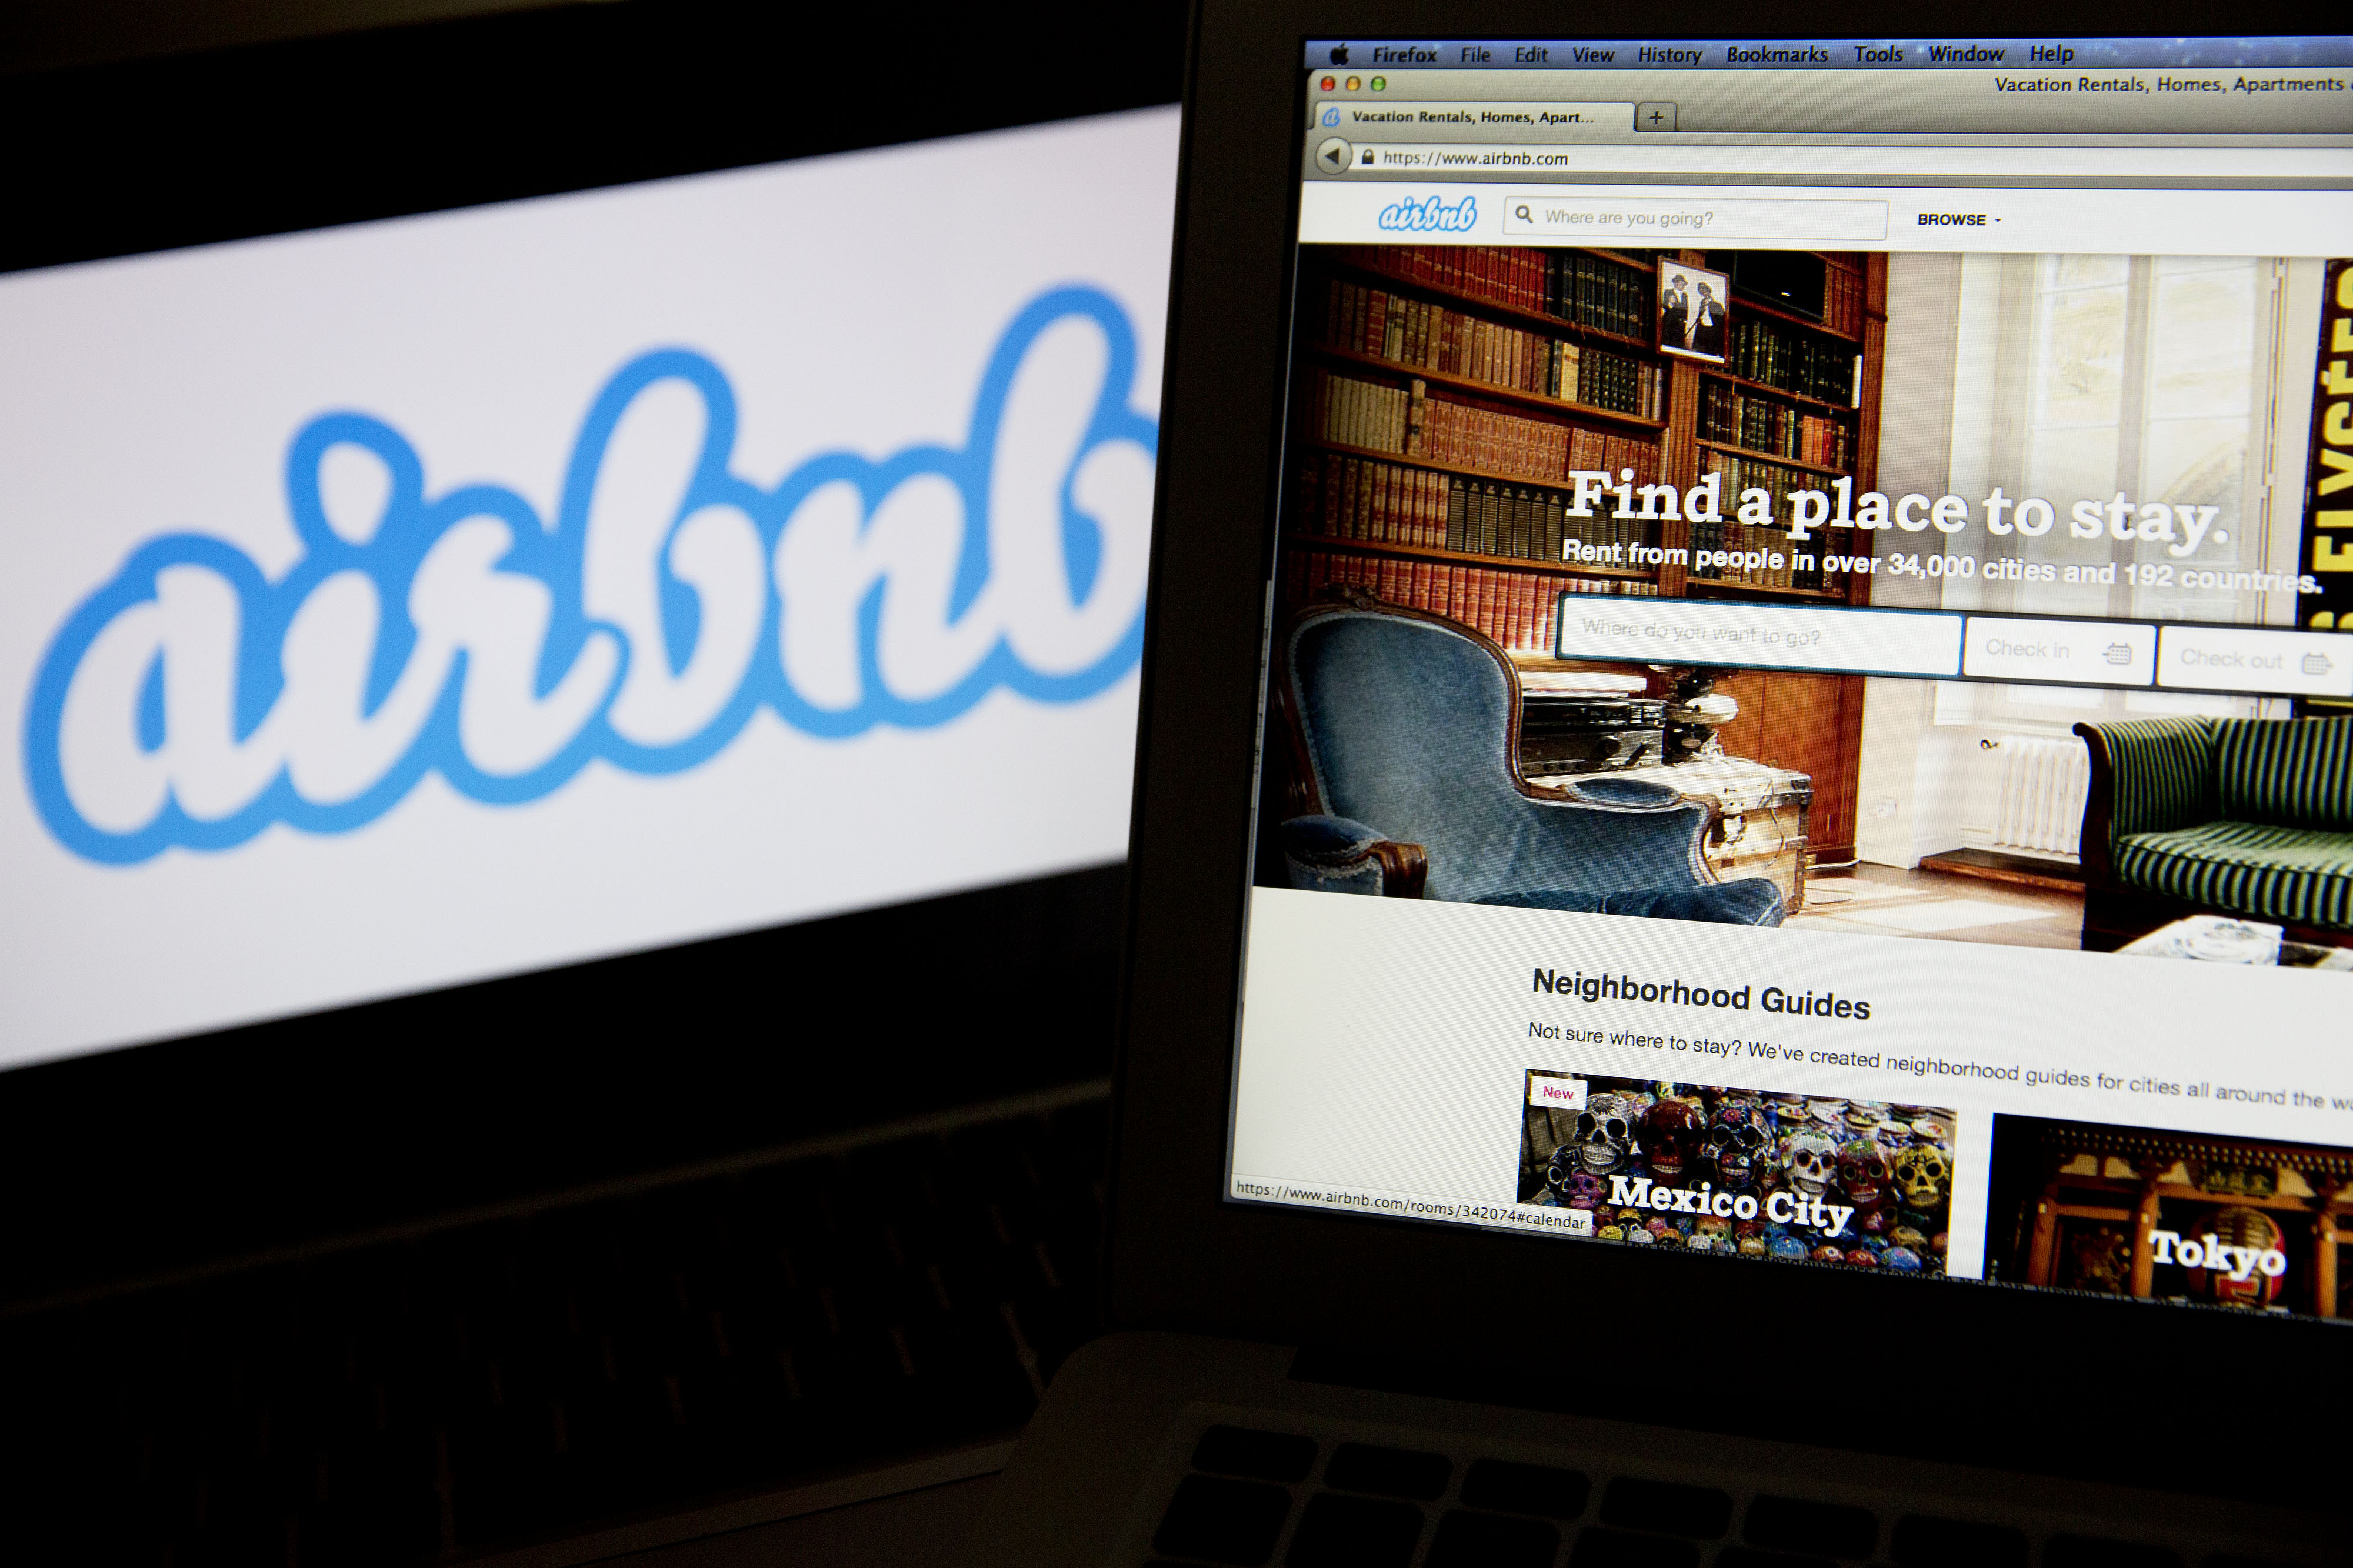 The Airbnb Inc. logo and website are displayed on laptop computers in this arranged photograph in Washington, D.C., U.S., on Friday, March 21, 2014.